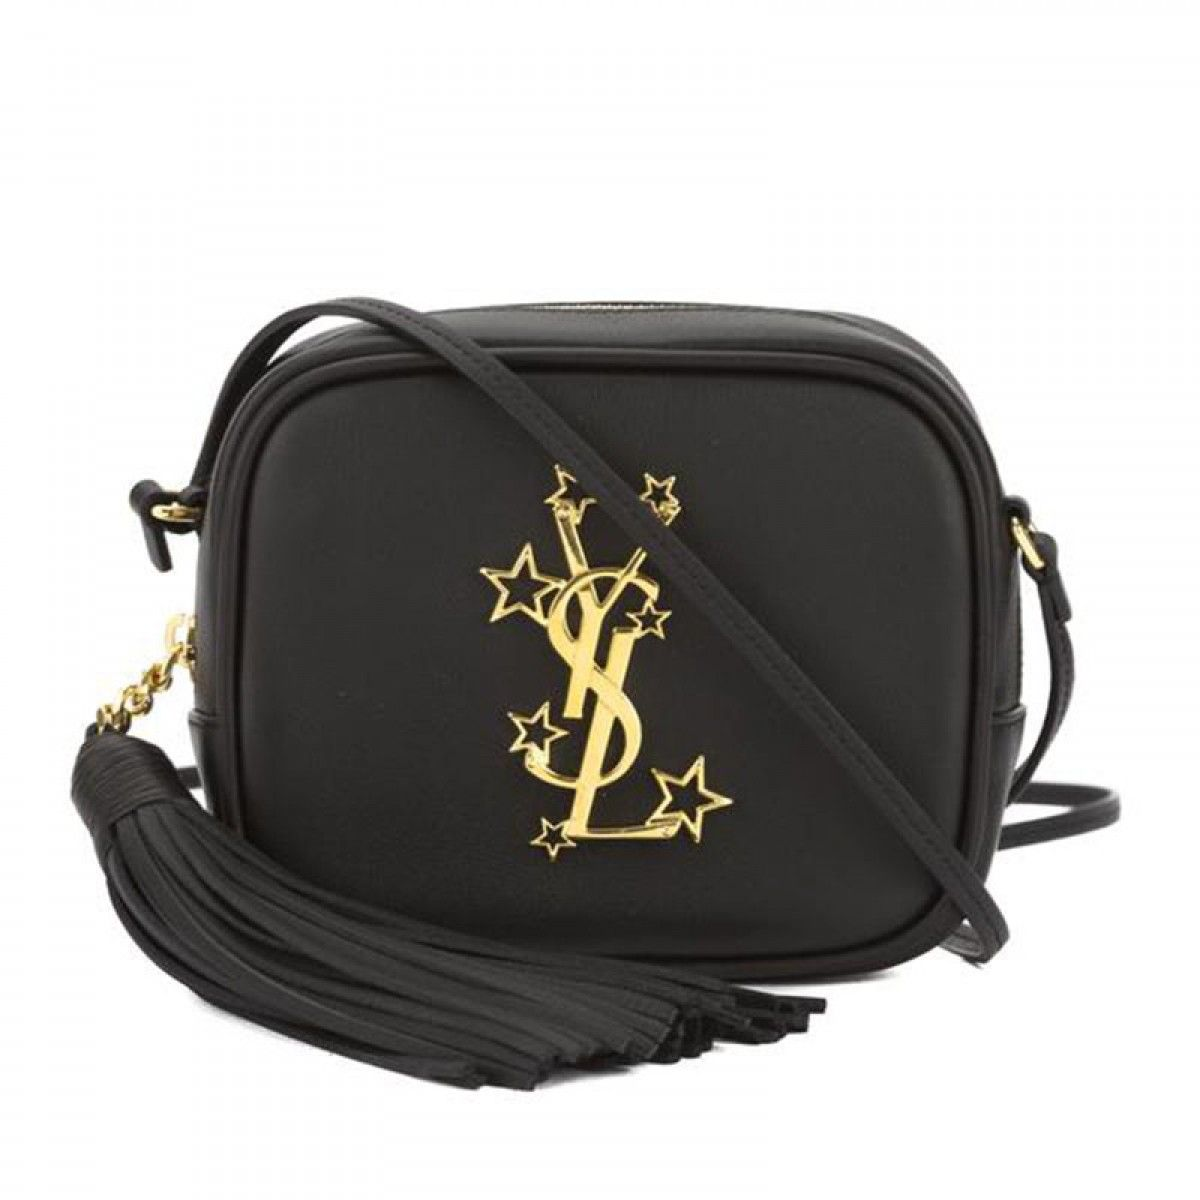 bff22bd4bca5 Saint Laurent Monogram Star Studded Blogger Bag In Leather Black